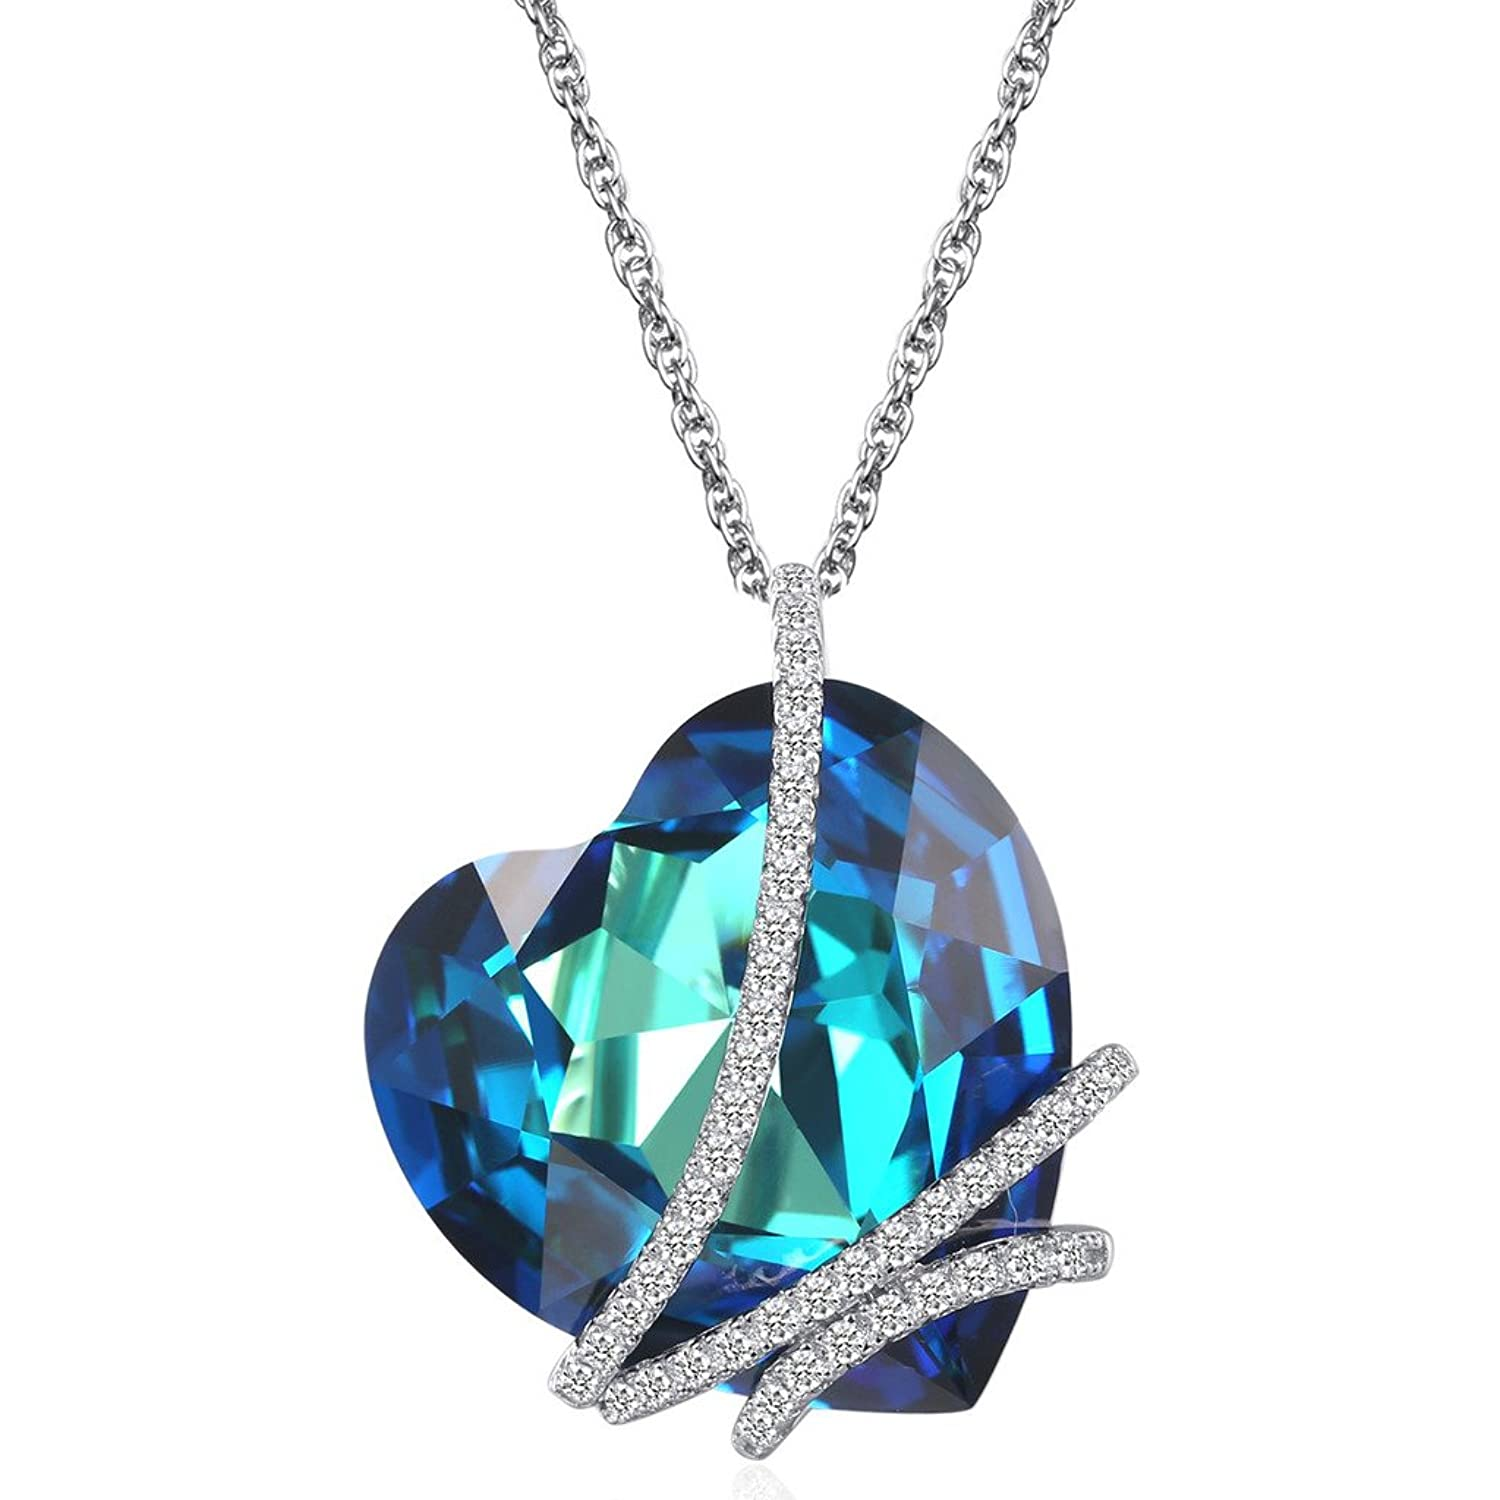 Amazon caperci mothers day gift sterling silver blue heart amazon caperci mothers day gift sterling silver blue heart pendant necklace made with swarovski crystal jewelry mozeypictures Images